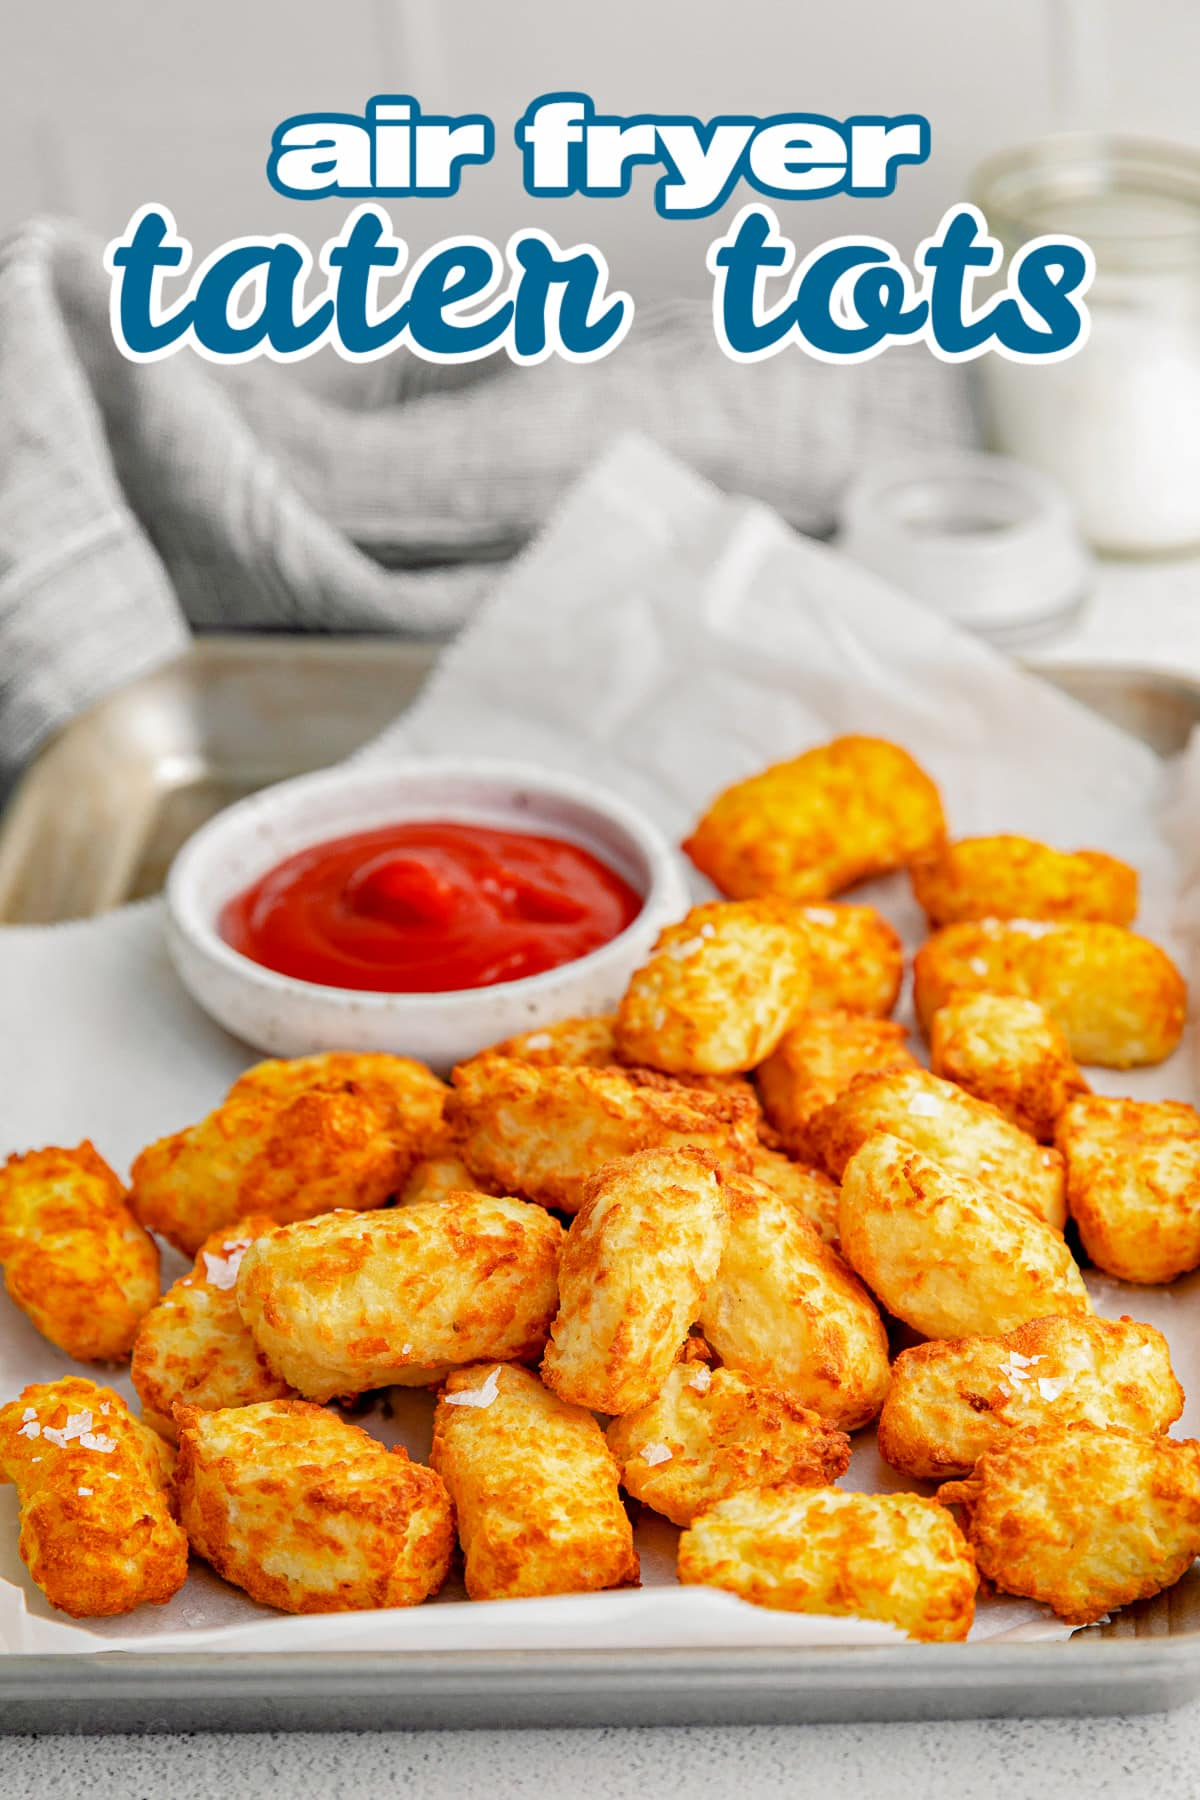 tater tots on sheet pan with small bowl of ketchup and title overlay at top of image.